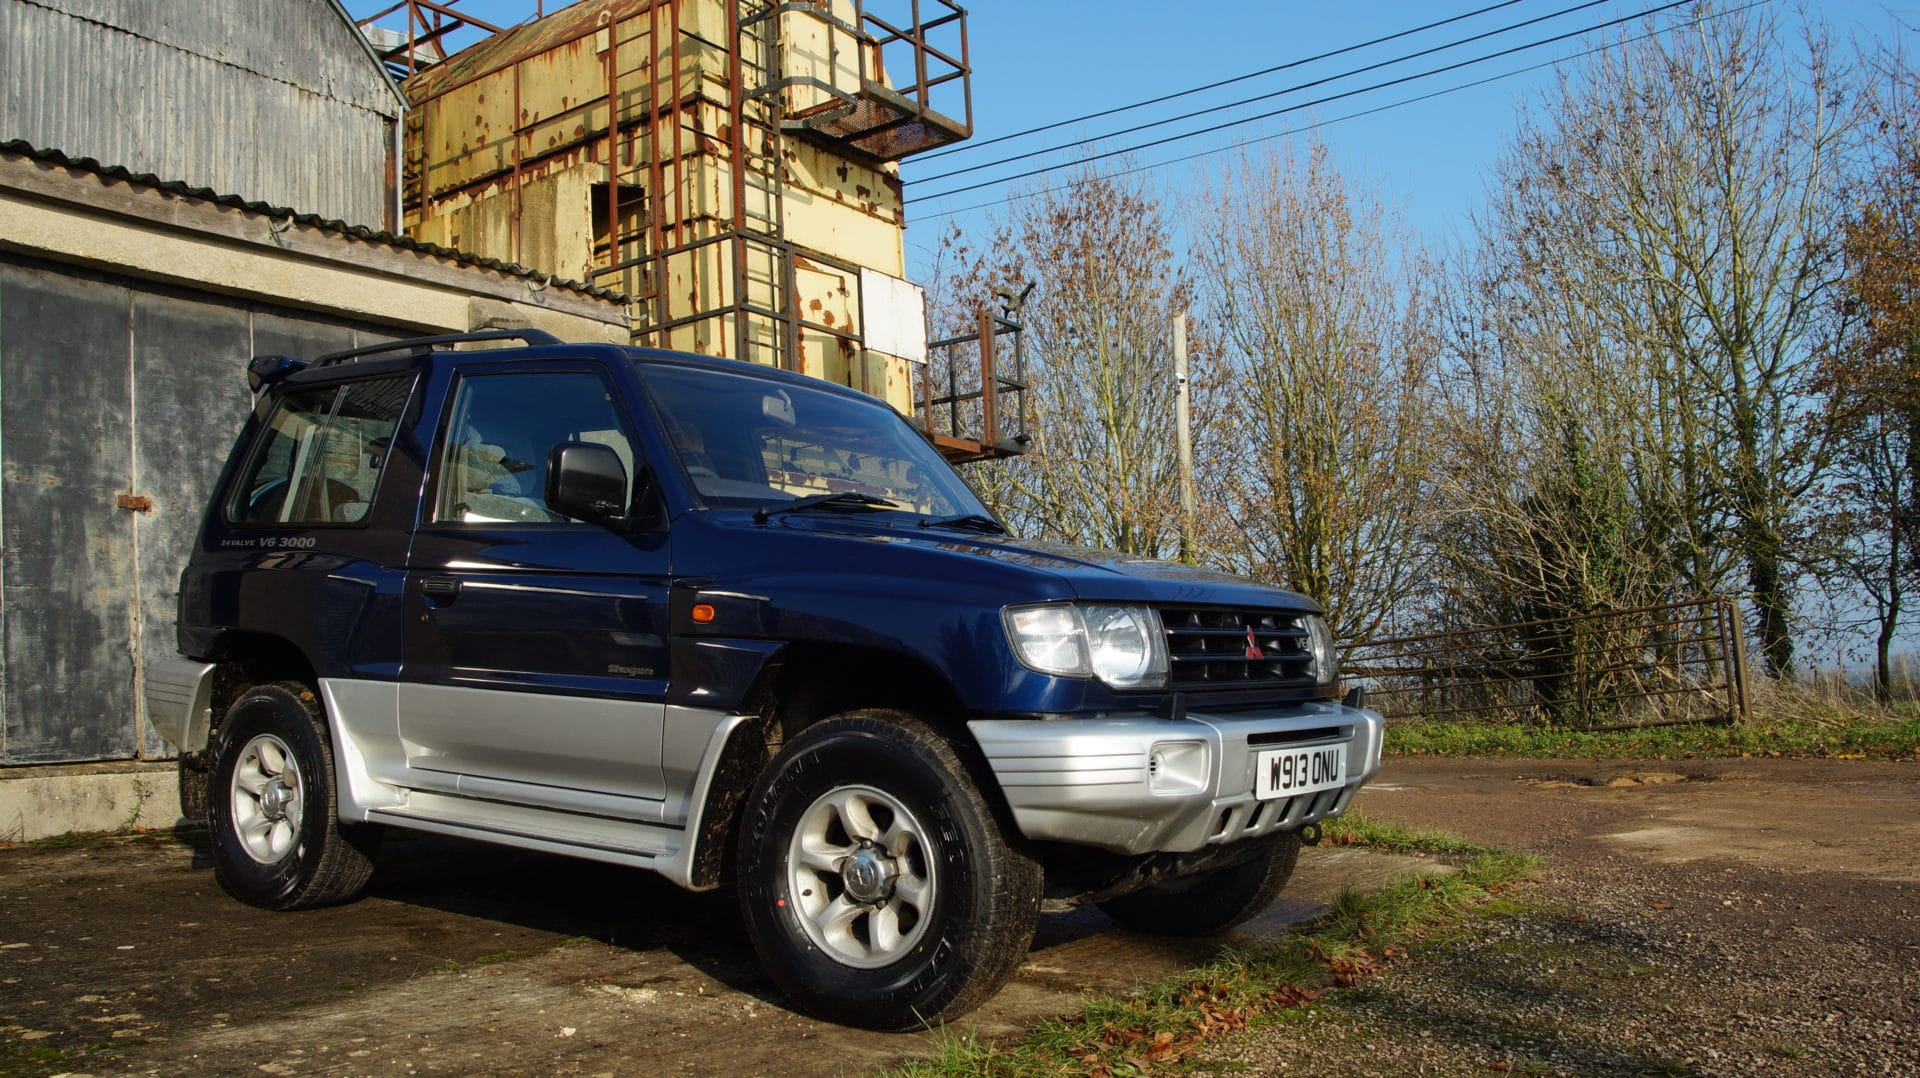 mitsubishi, mitsubishi pajero, mitsubishi shogun, shogun, pajero, 4x4x, classic car, retro car, motoring, automotive, carandclassic, carandclassic.co.uk, featured